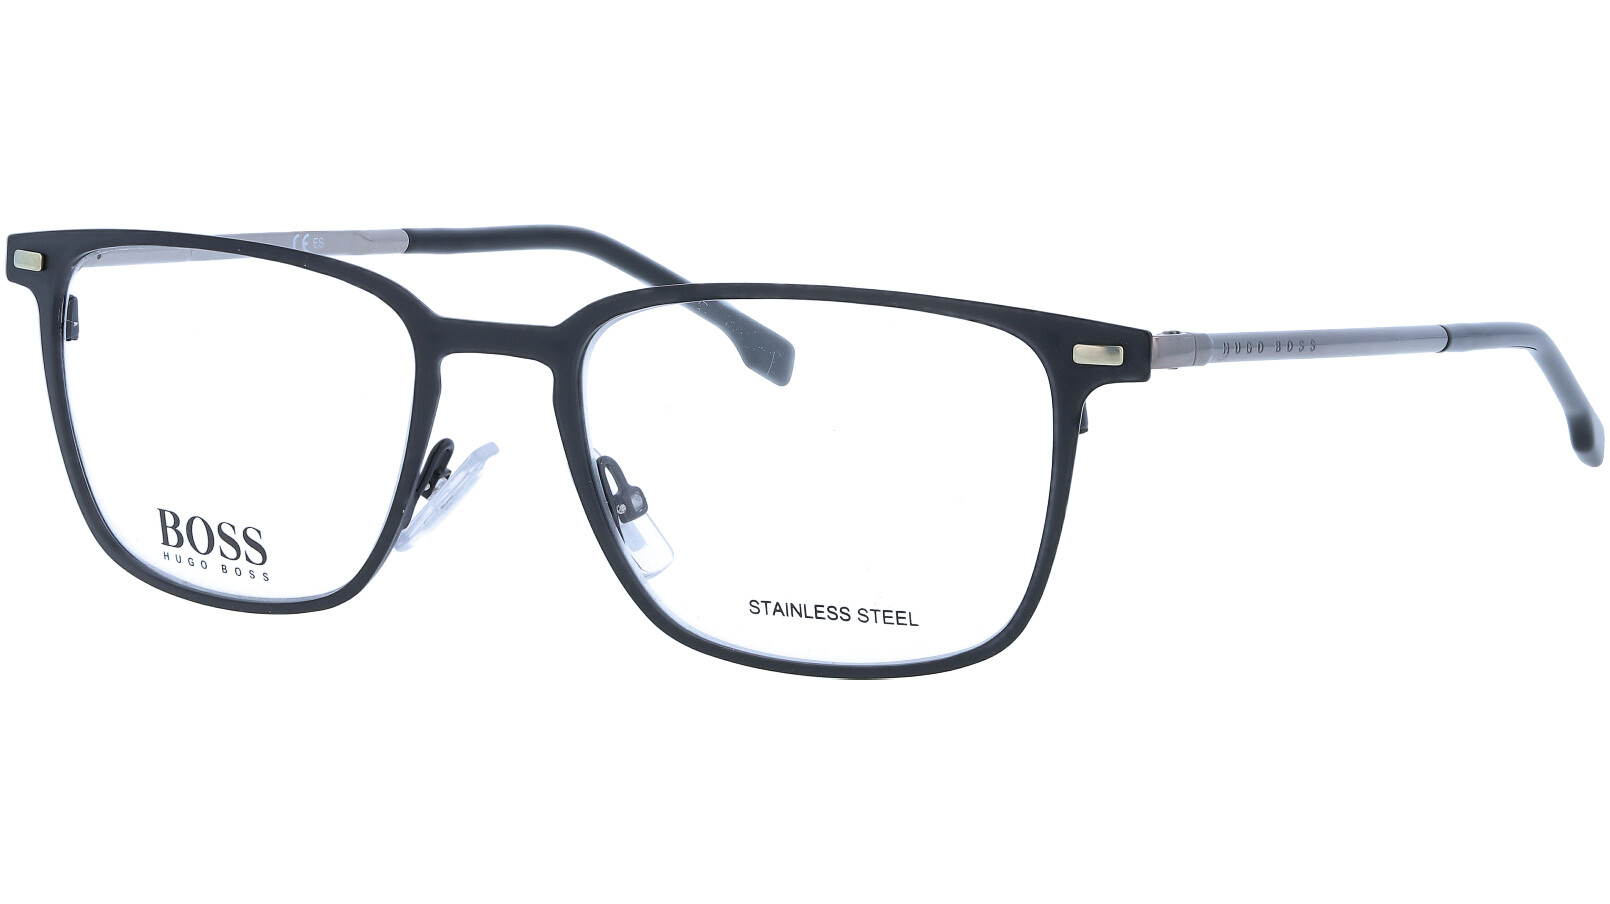 HUGO BOSS BOSS1021 003 52 MATT Glasses